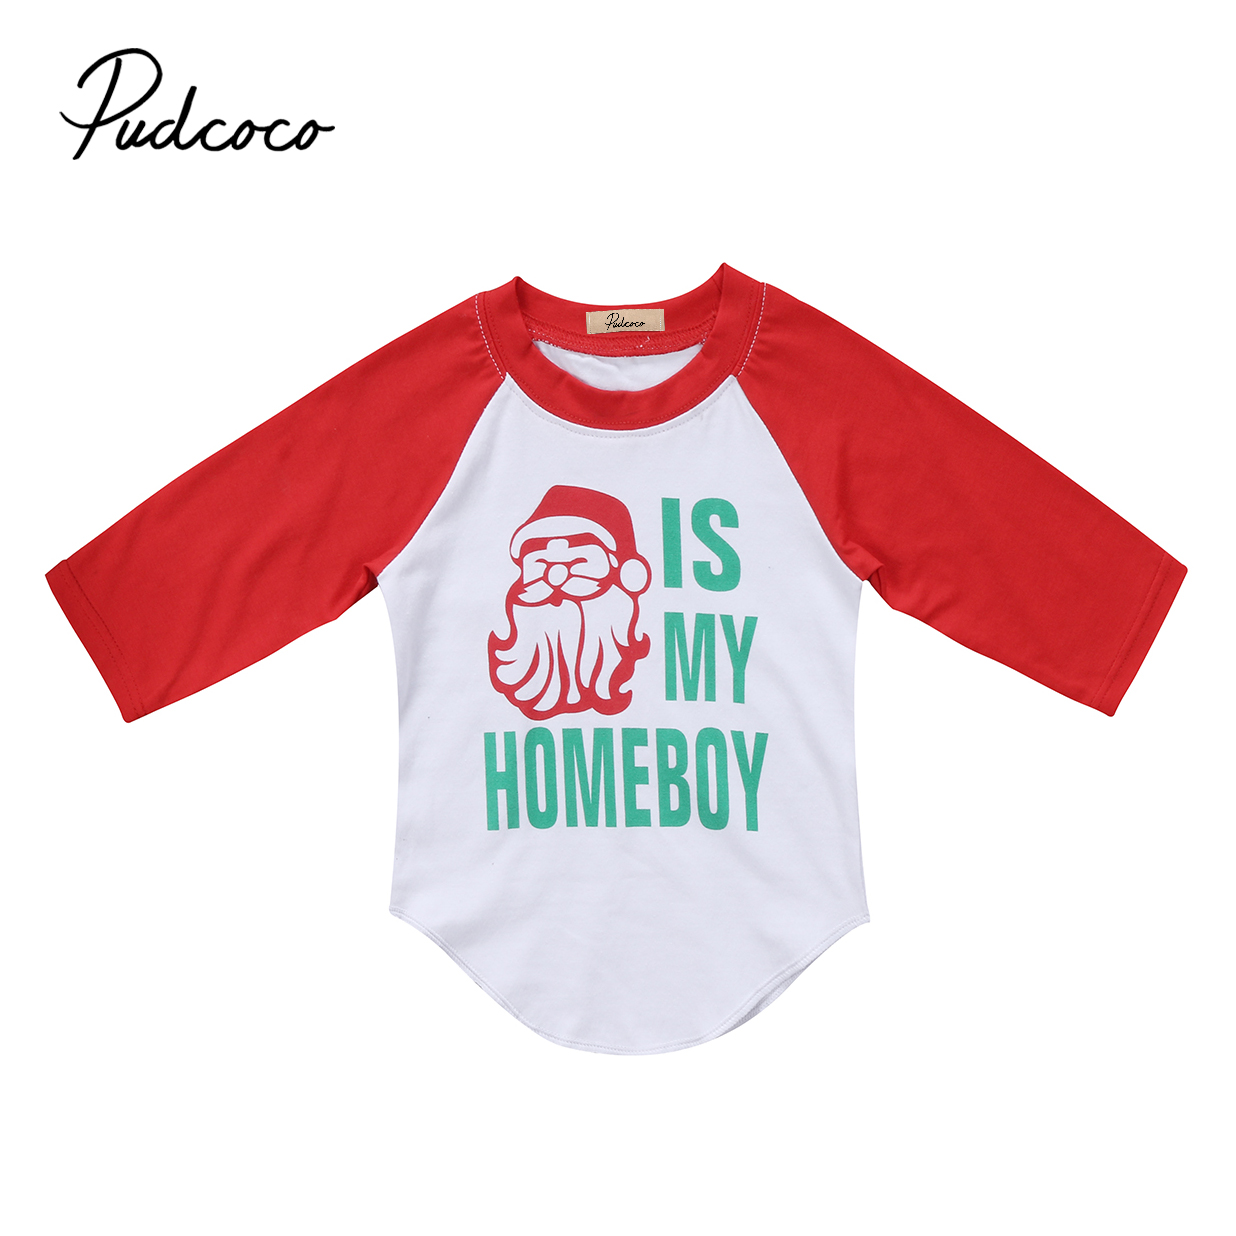 T-Shirt Long-Sleeve Toddler Baby-Boys-Girls Kids Cotton Xmas Casual Tops Festivel